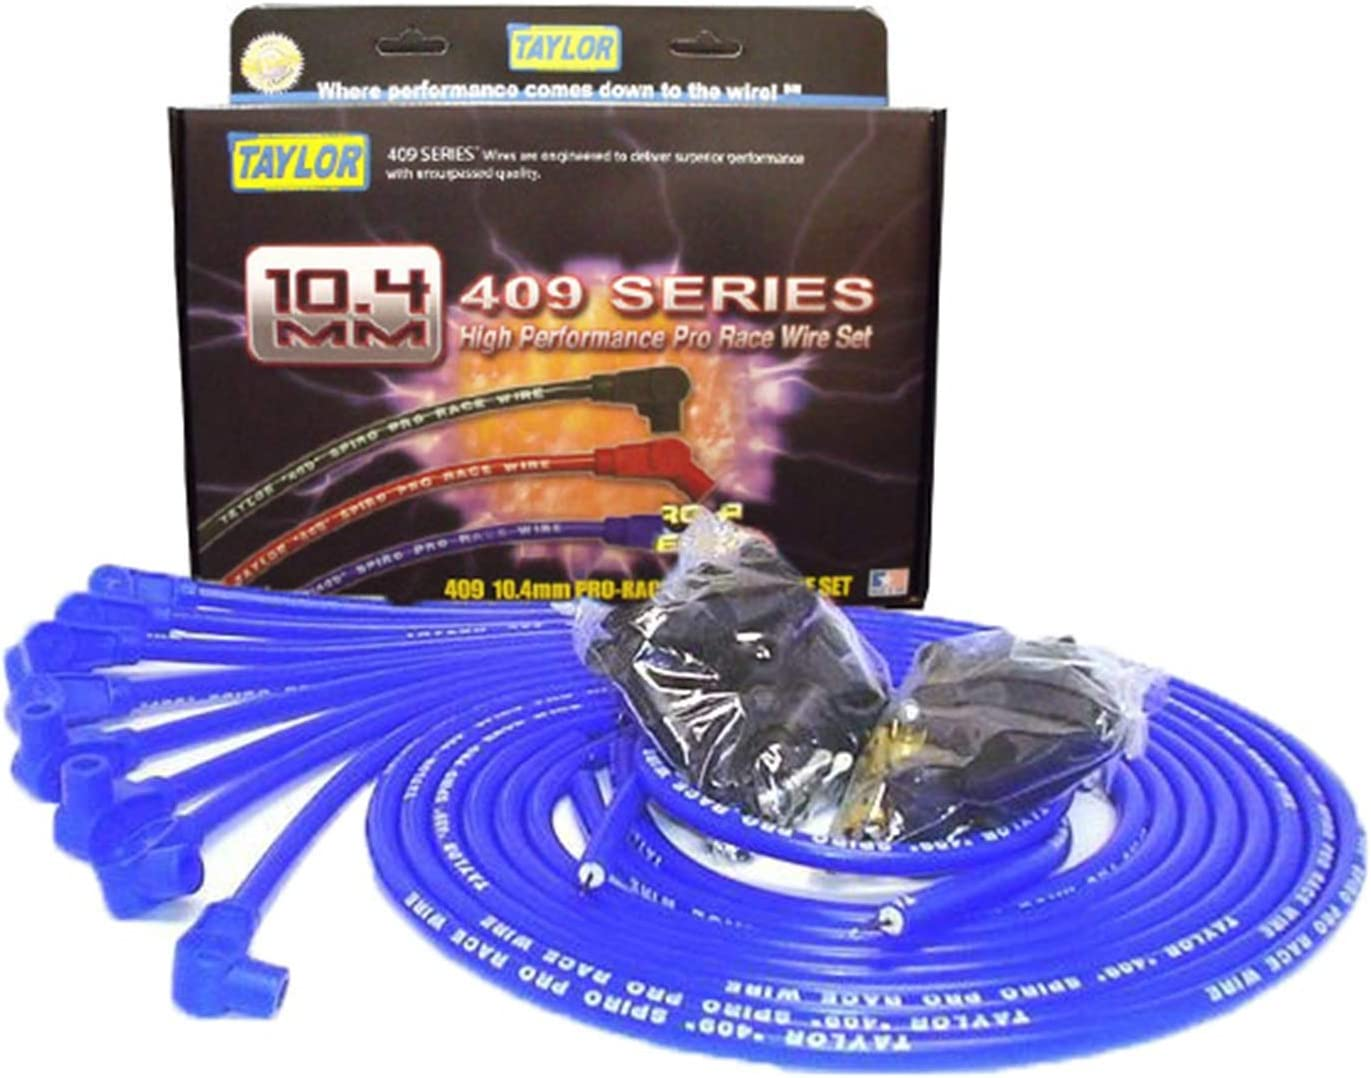 Taylor Cable 79651 Blue 10.4Mm Universal Fit 8-Cylinder Spiro Pro Race Spark Plug Wire Set